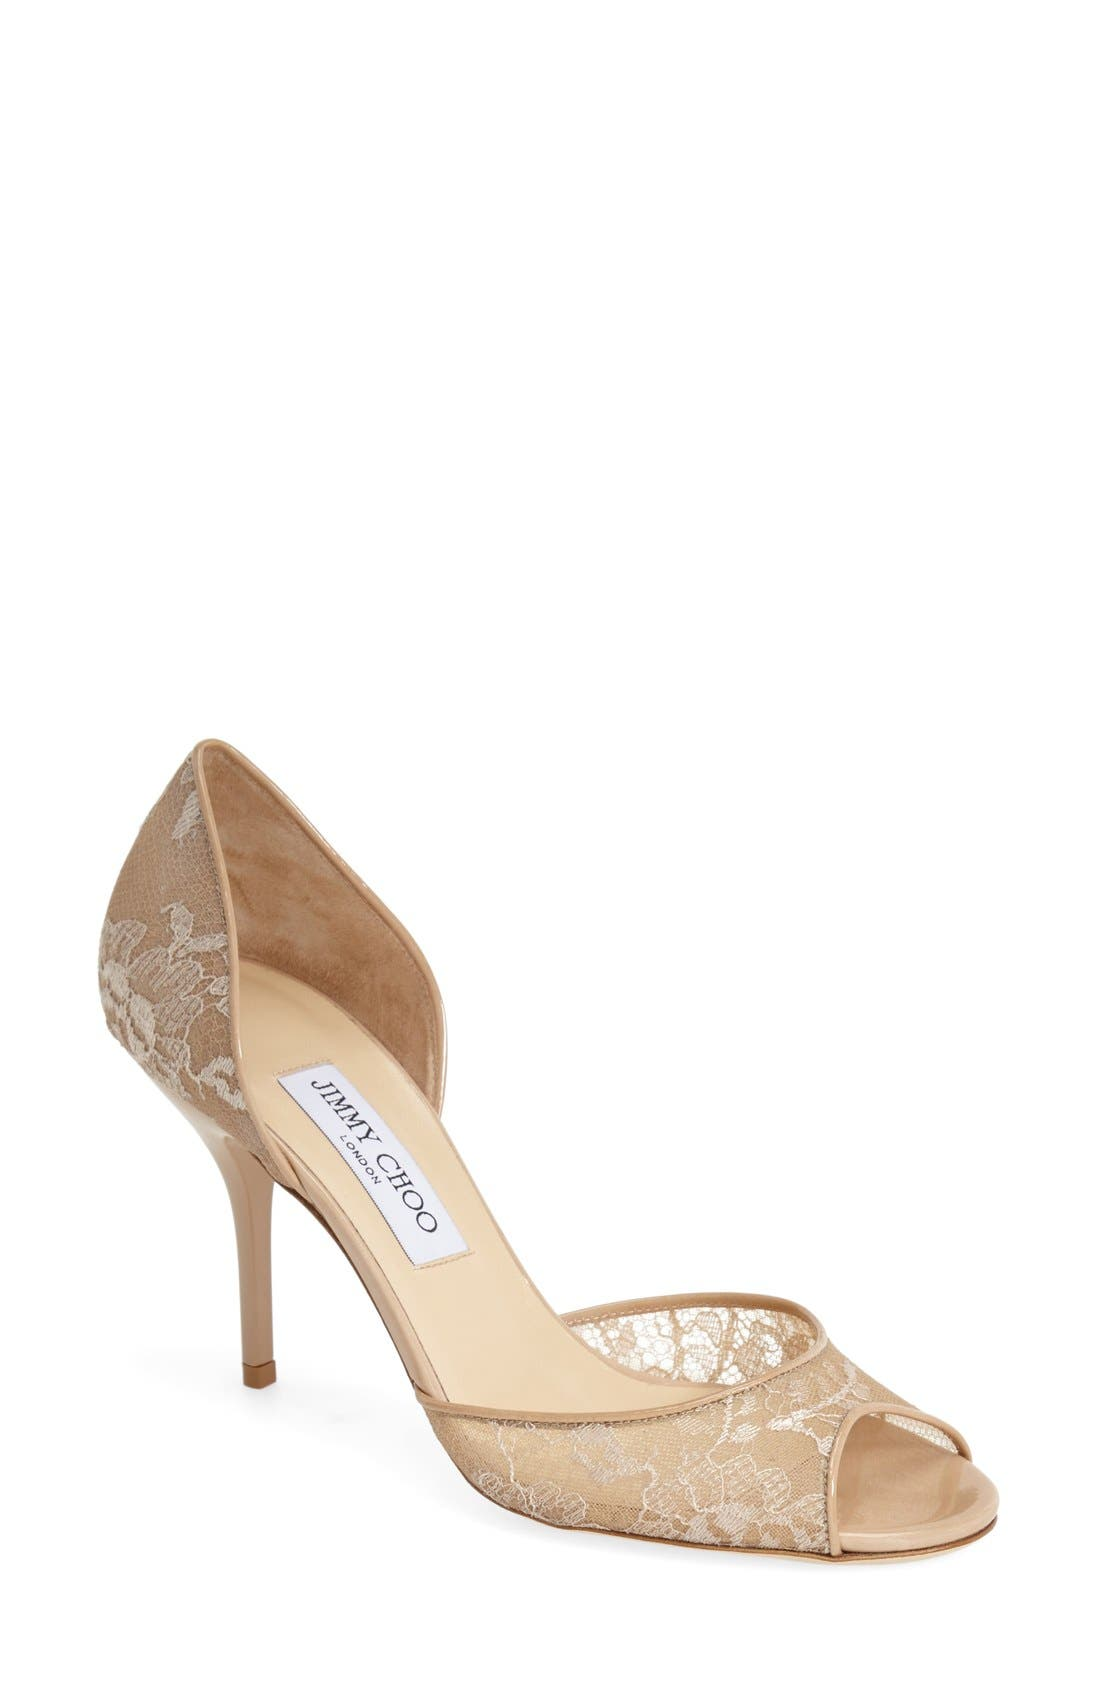 Alternate Image 1 Selected - Jimmy Choo 'Lien' Lace Open Toe d'Orsay Pump (Women)